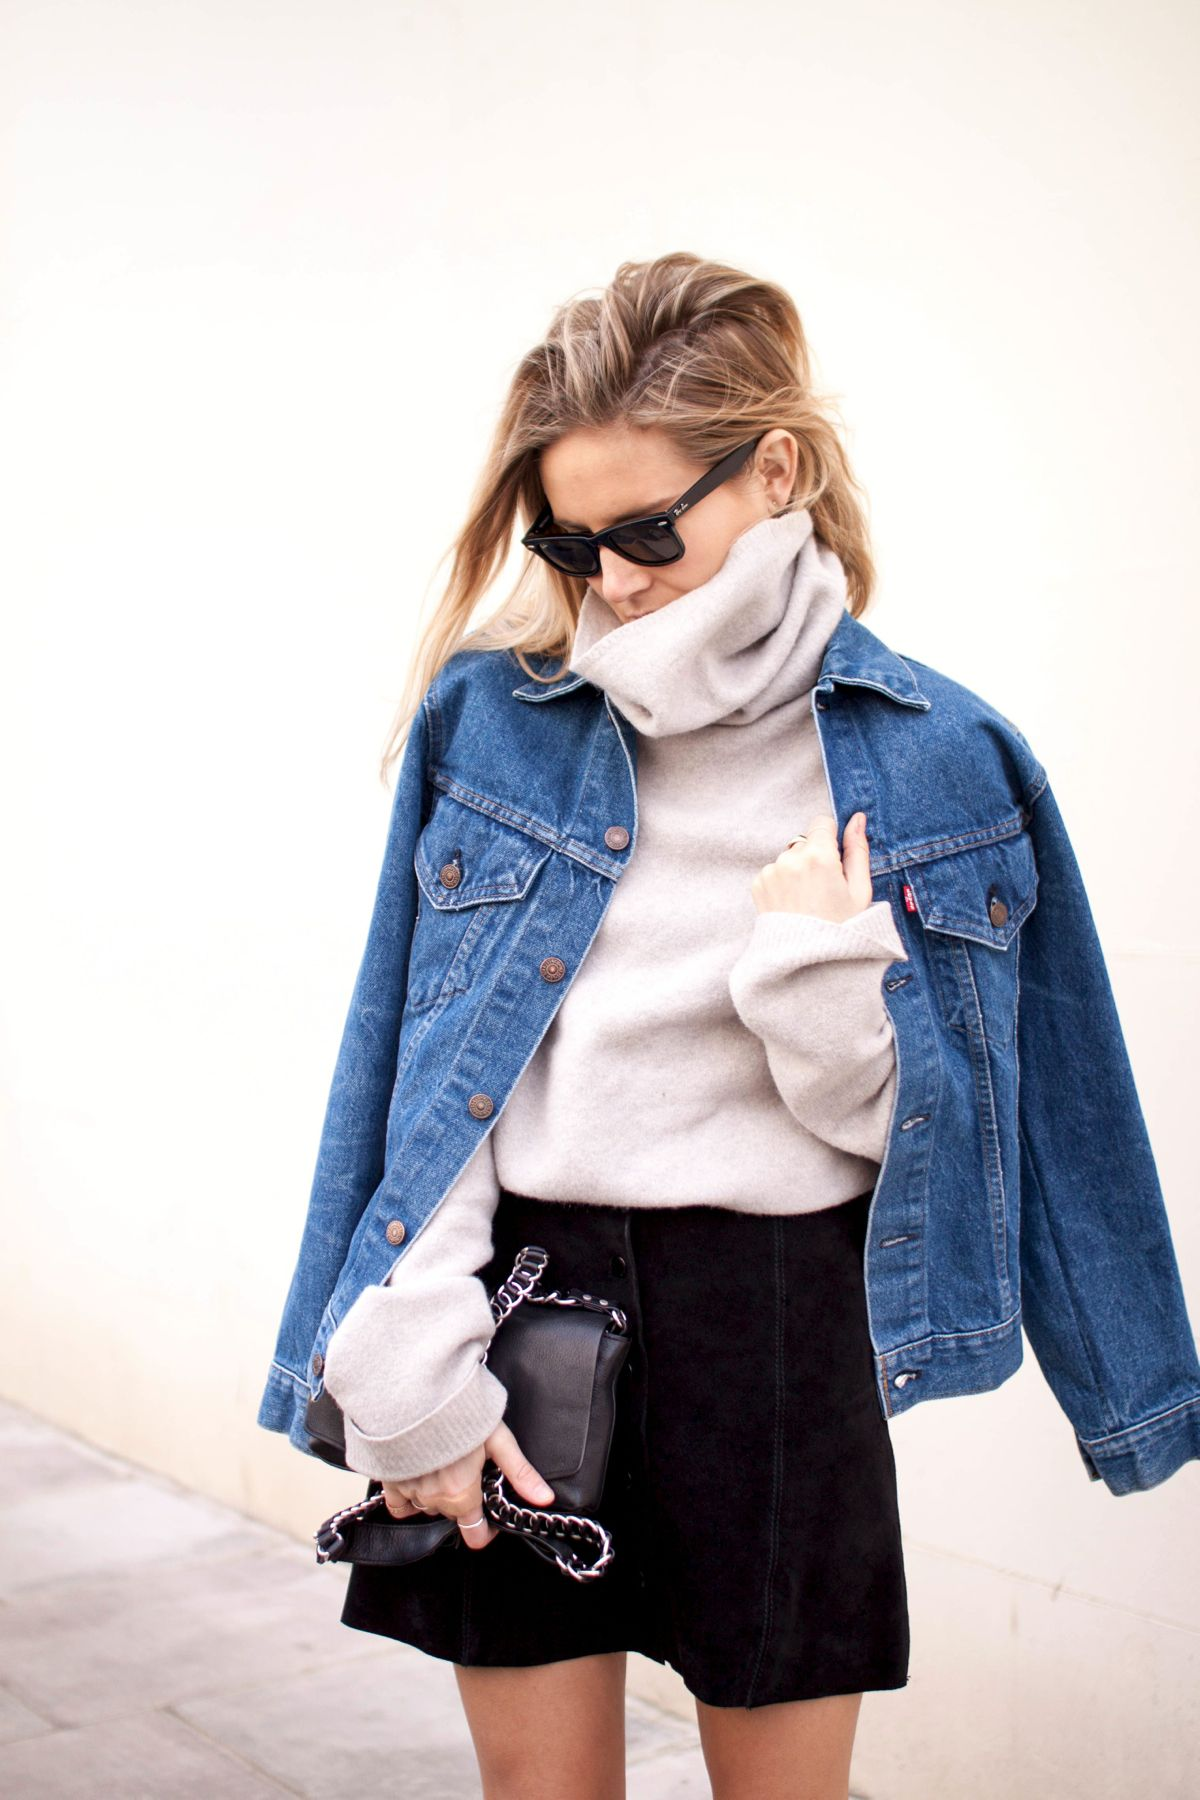 21a89b5cee93a 7 Unbelievably Chic Ways to Rock a Turtleneck